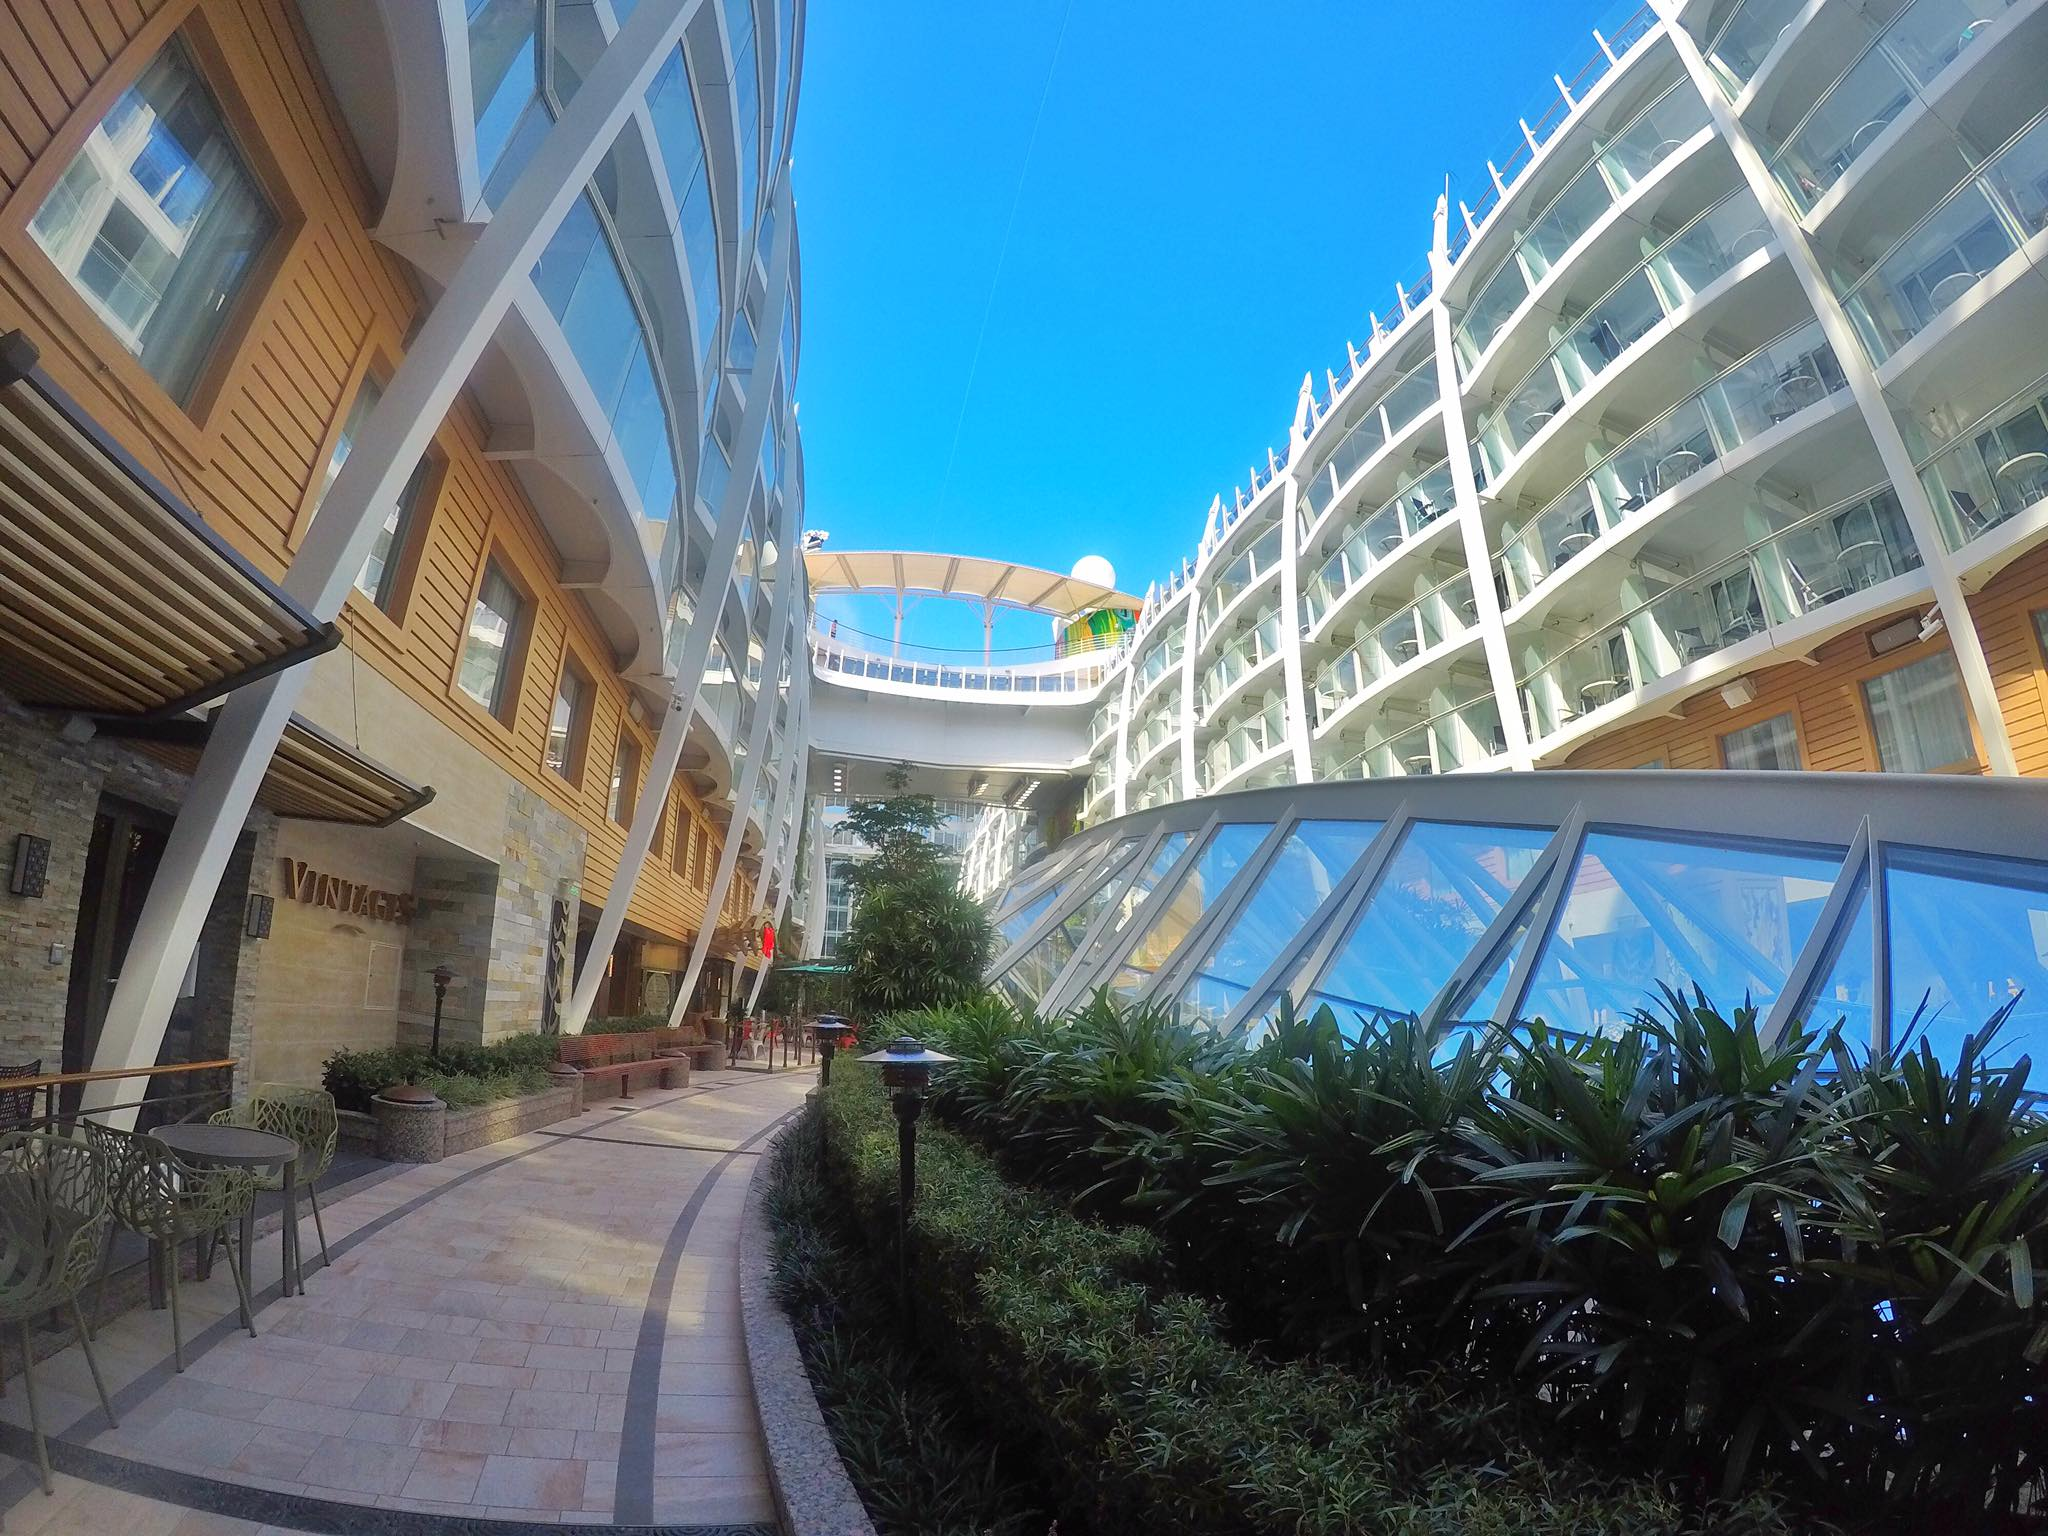 ace with Royal Caribbean's Symphony of the Seas in Naples, Italy